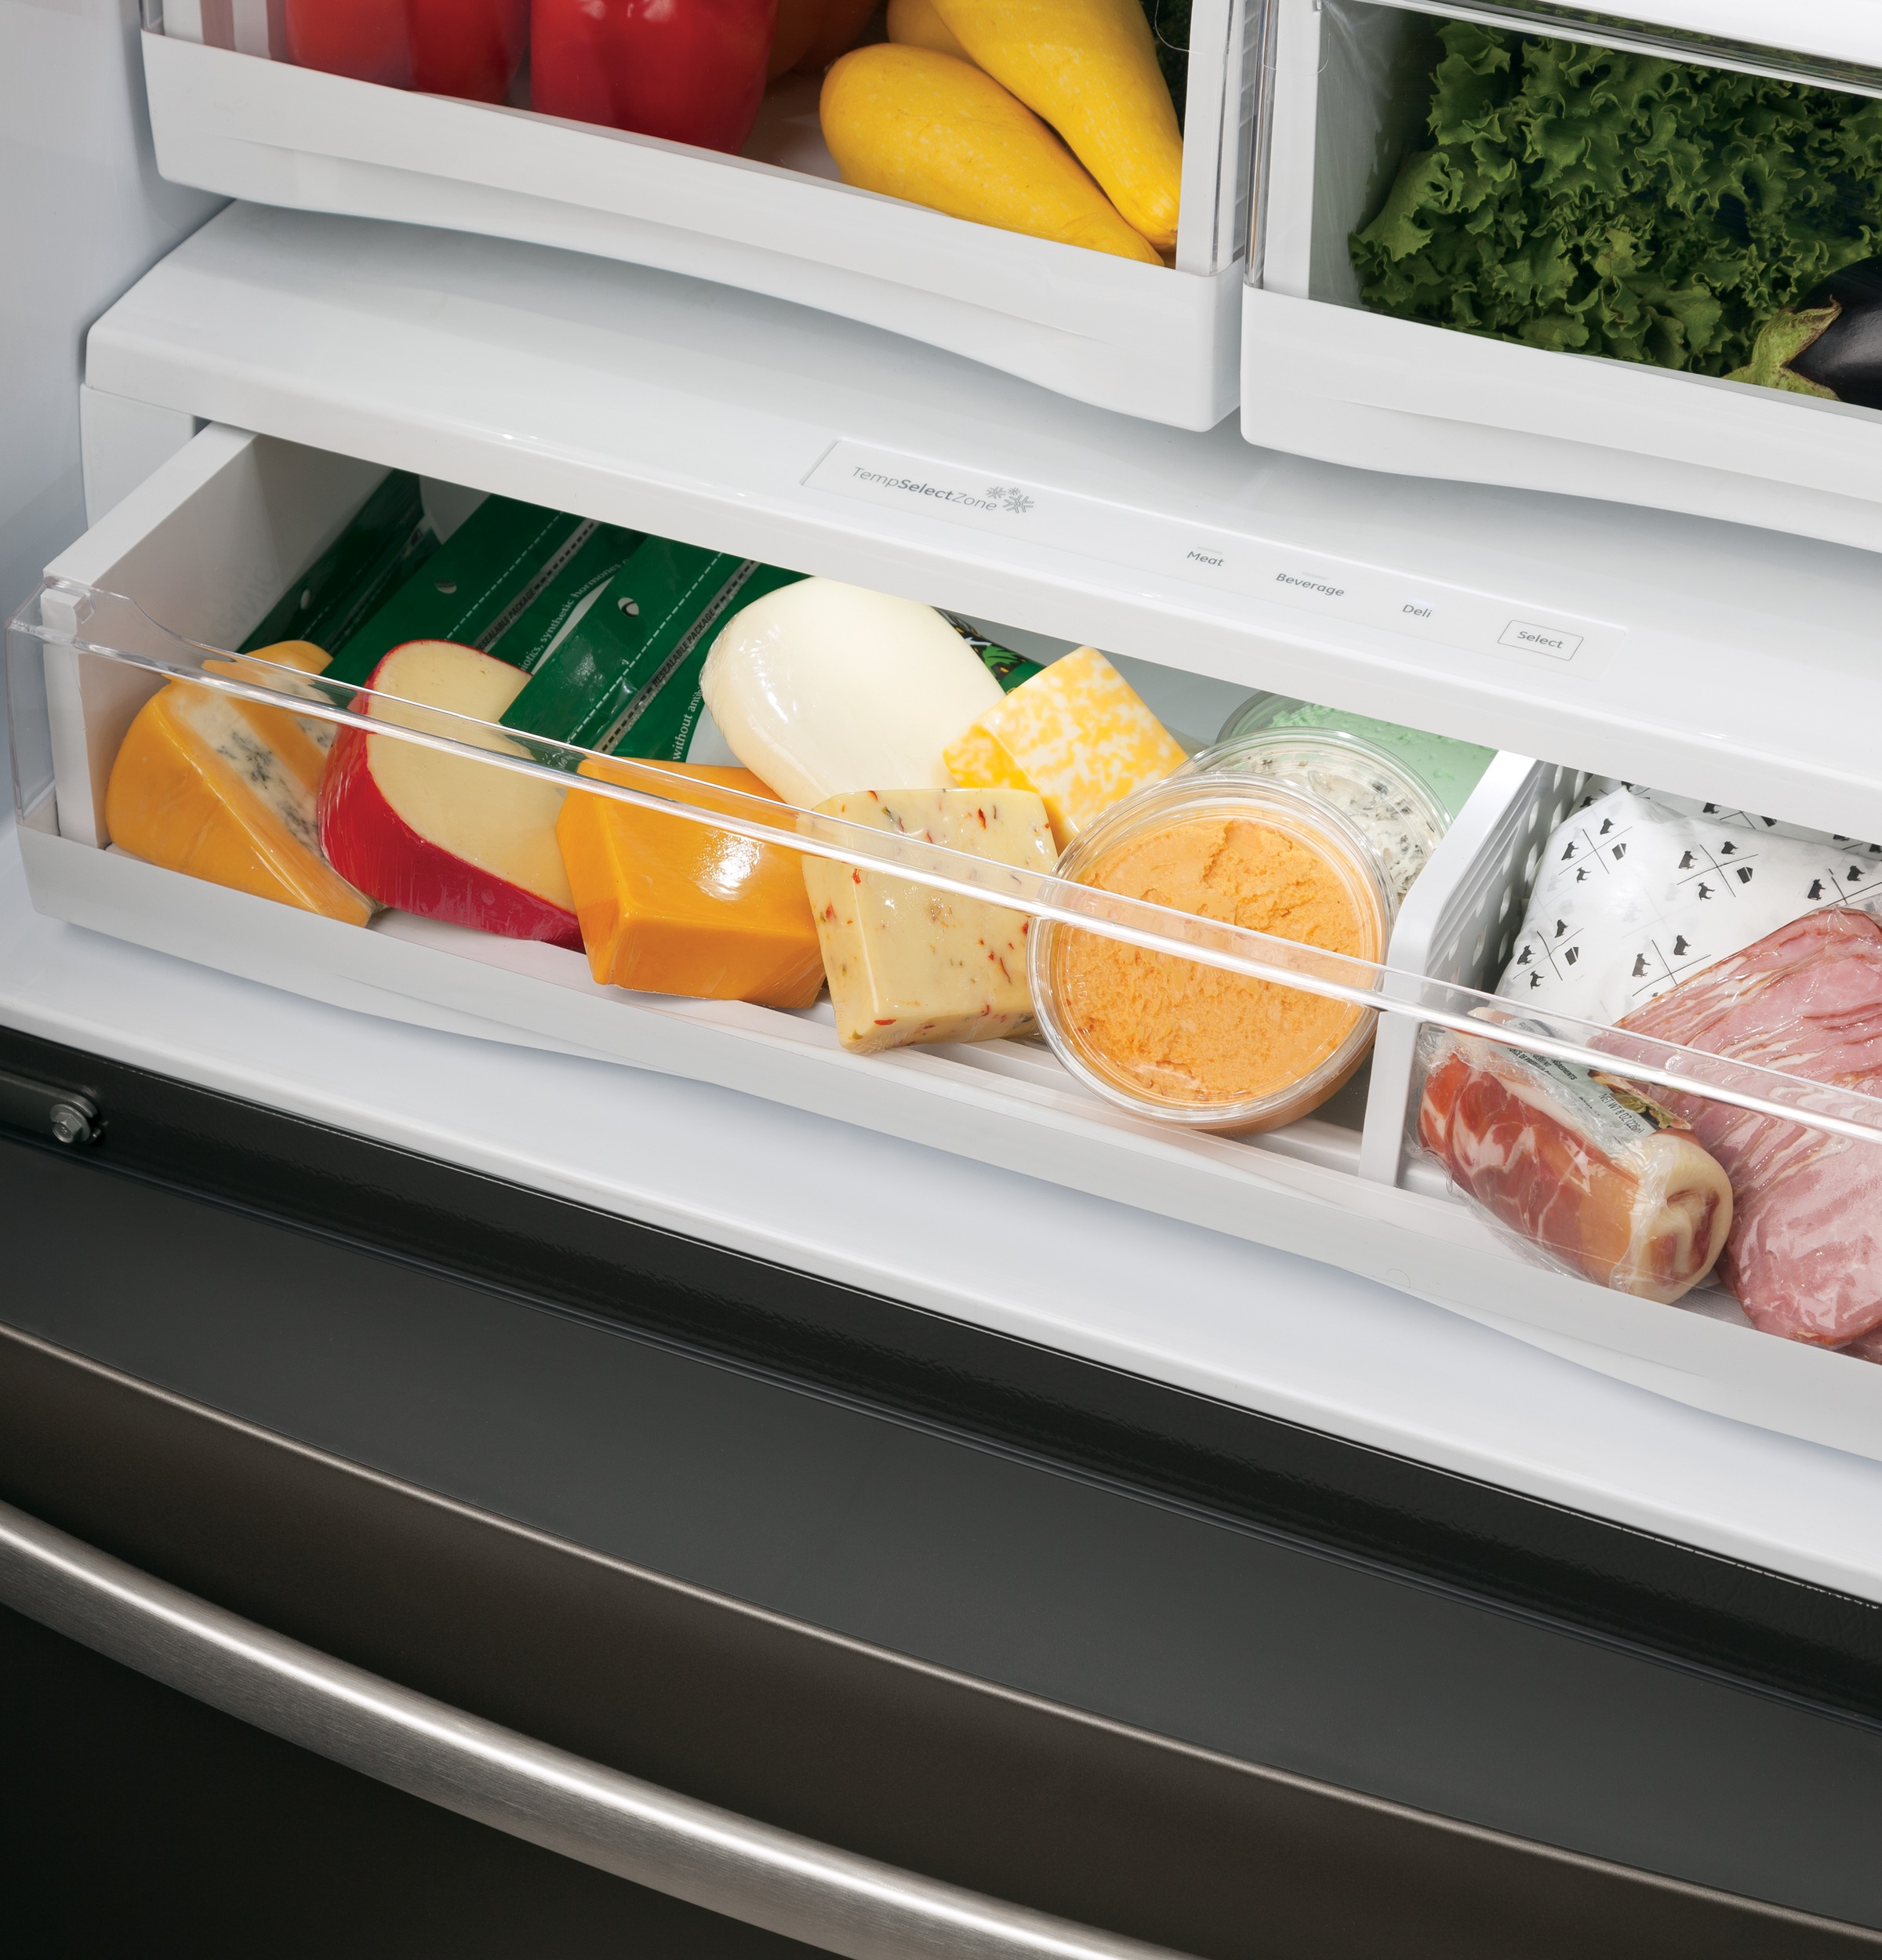 Model: PYE22KELDS | GE Profile GE Profile™ Series ENERGY STAR® 22.1 Cu. Ft. Counter-Depth French-Door Refrigerator with Hands-Free AutoFill